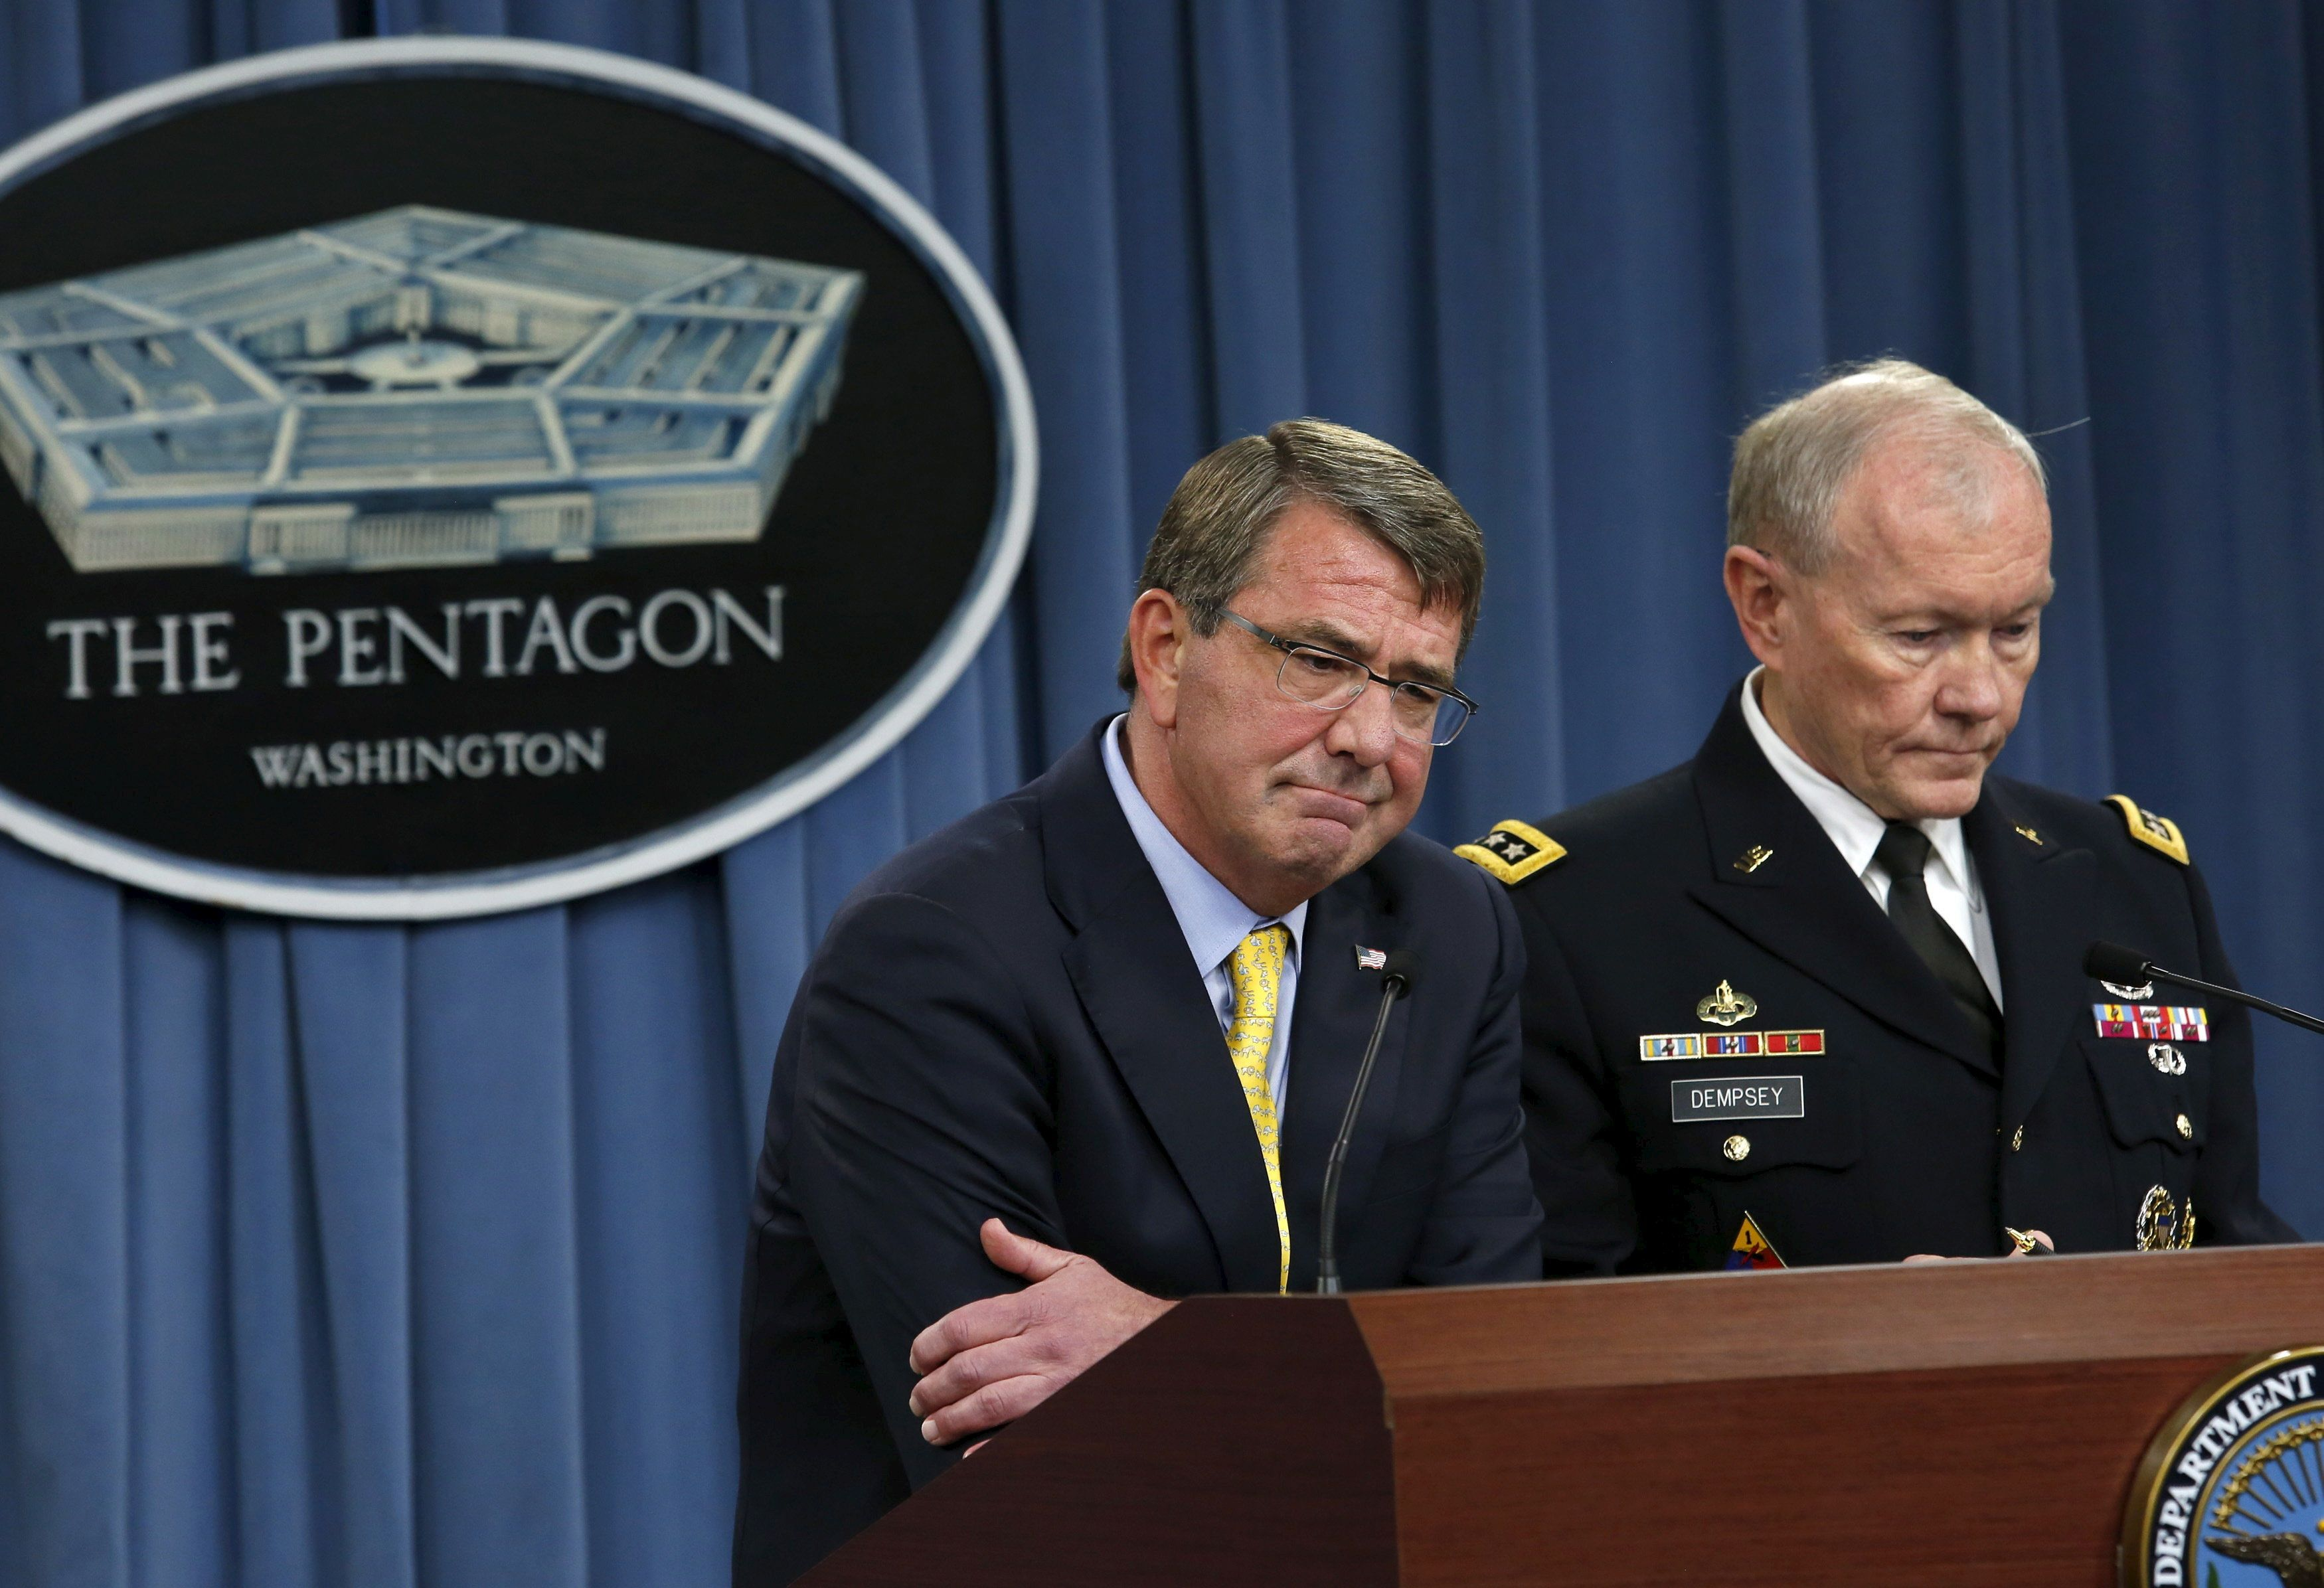 U.S. Defense Secretary Ash Carter (L) and Chairman of the Joint Chiefs of Staff Gen. Martin Dempsey hold a joint news conference at the Pentagon in Washington July 1, 2015. REUTERS/Yuri Gripas